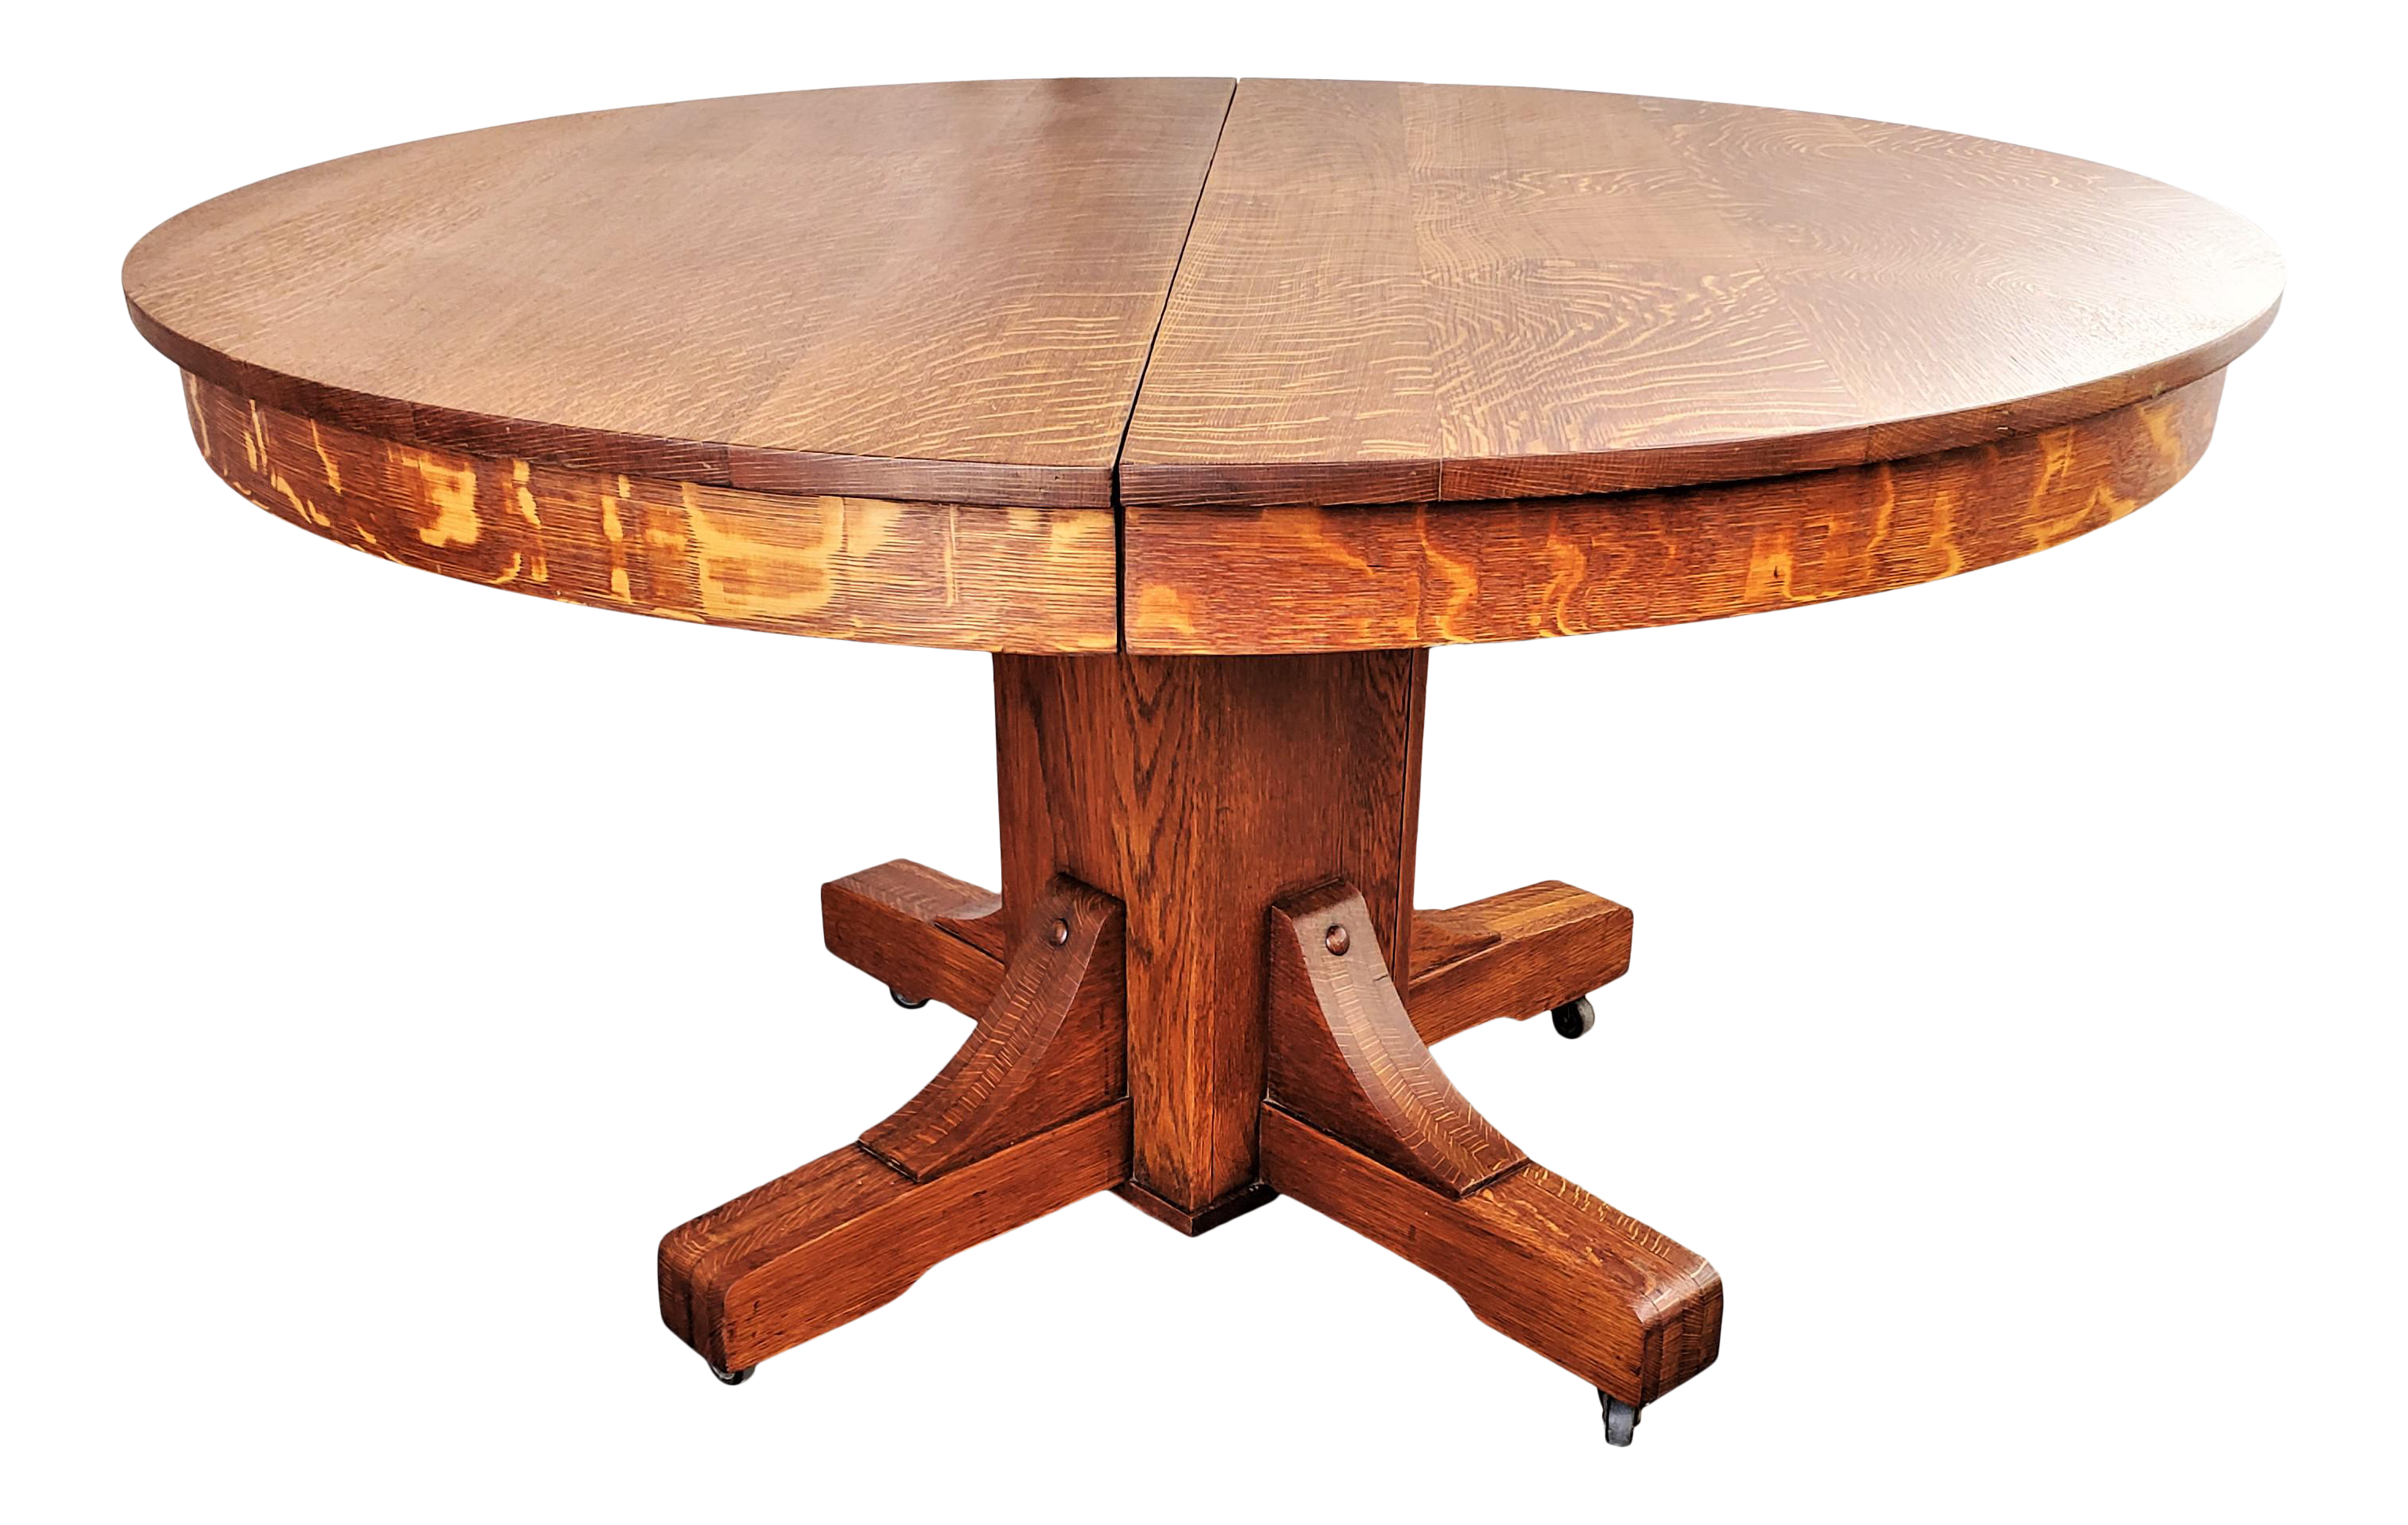 Antique Arts & Crafts Mission Round Oak Dining Table With 9 Leaves 9